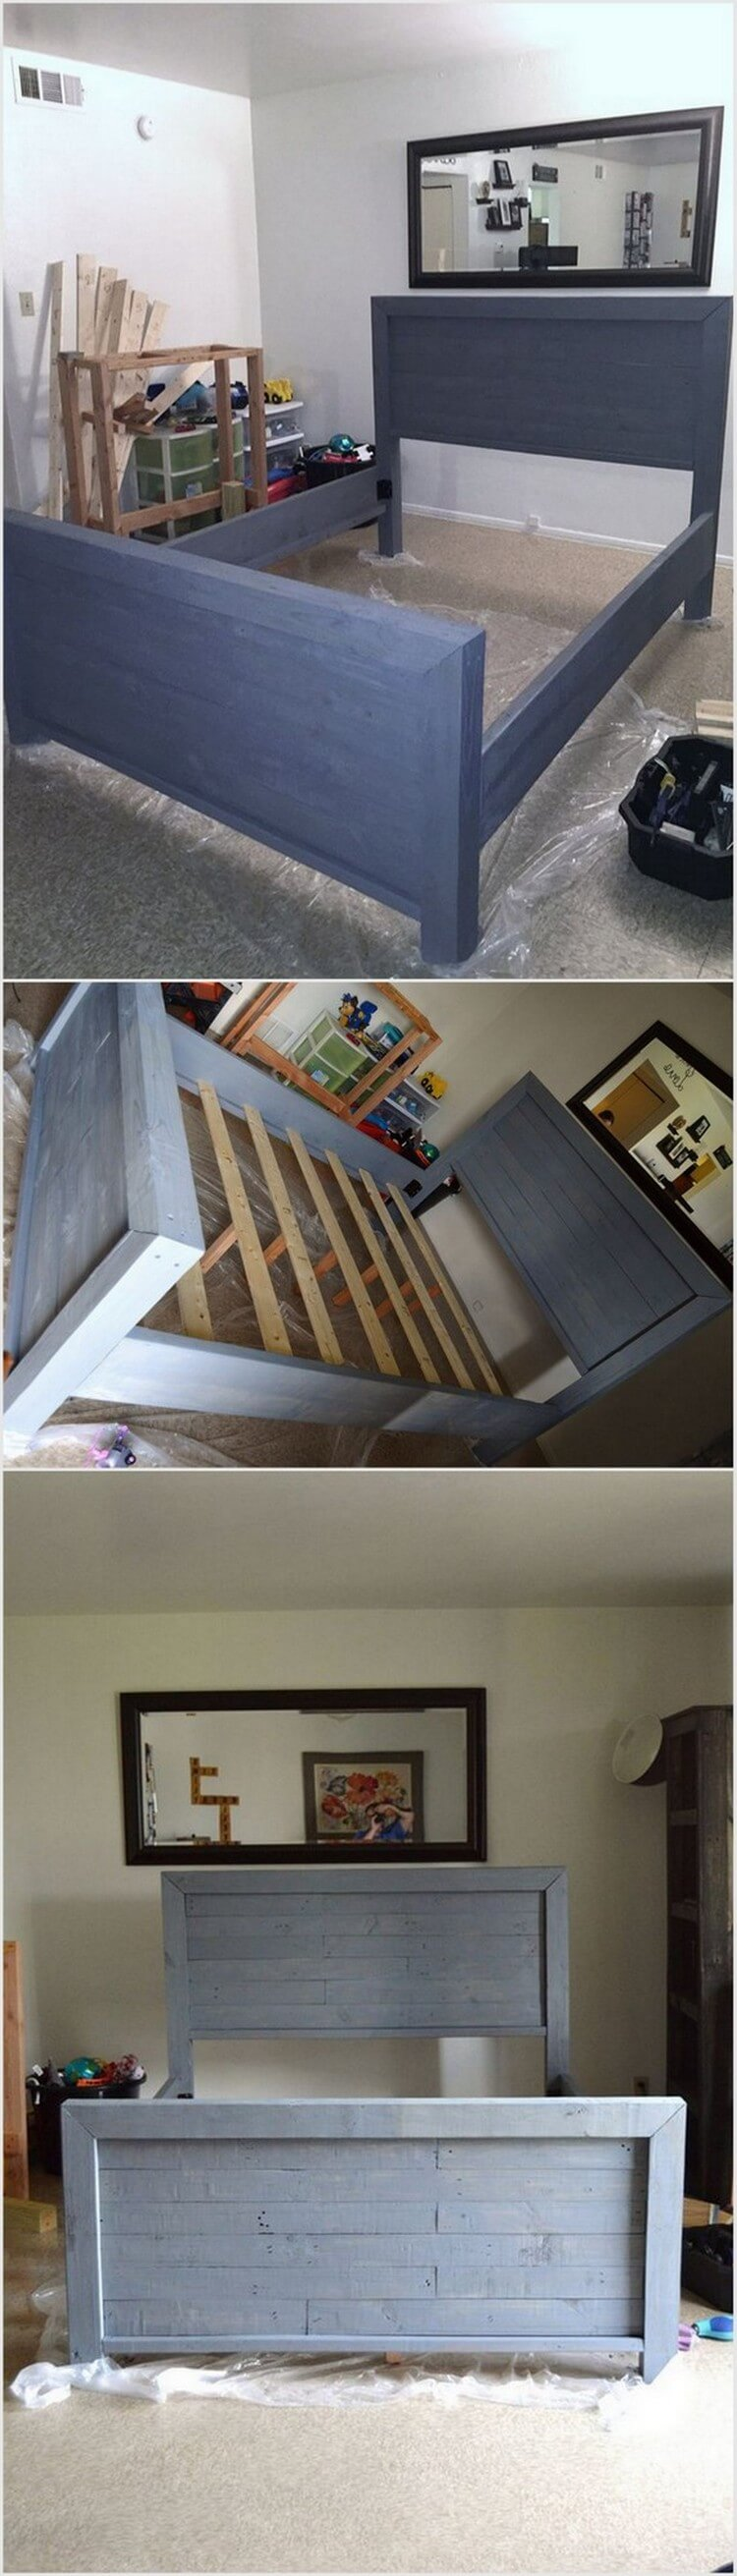 Painted Wood Pallet Bed Frame